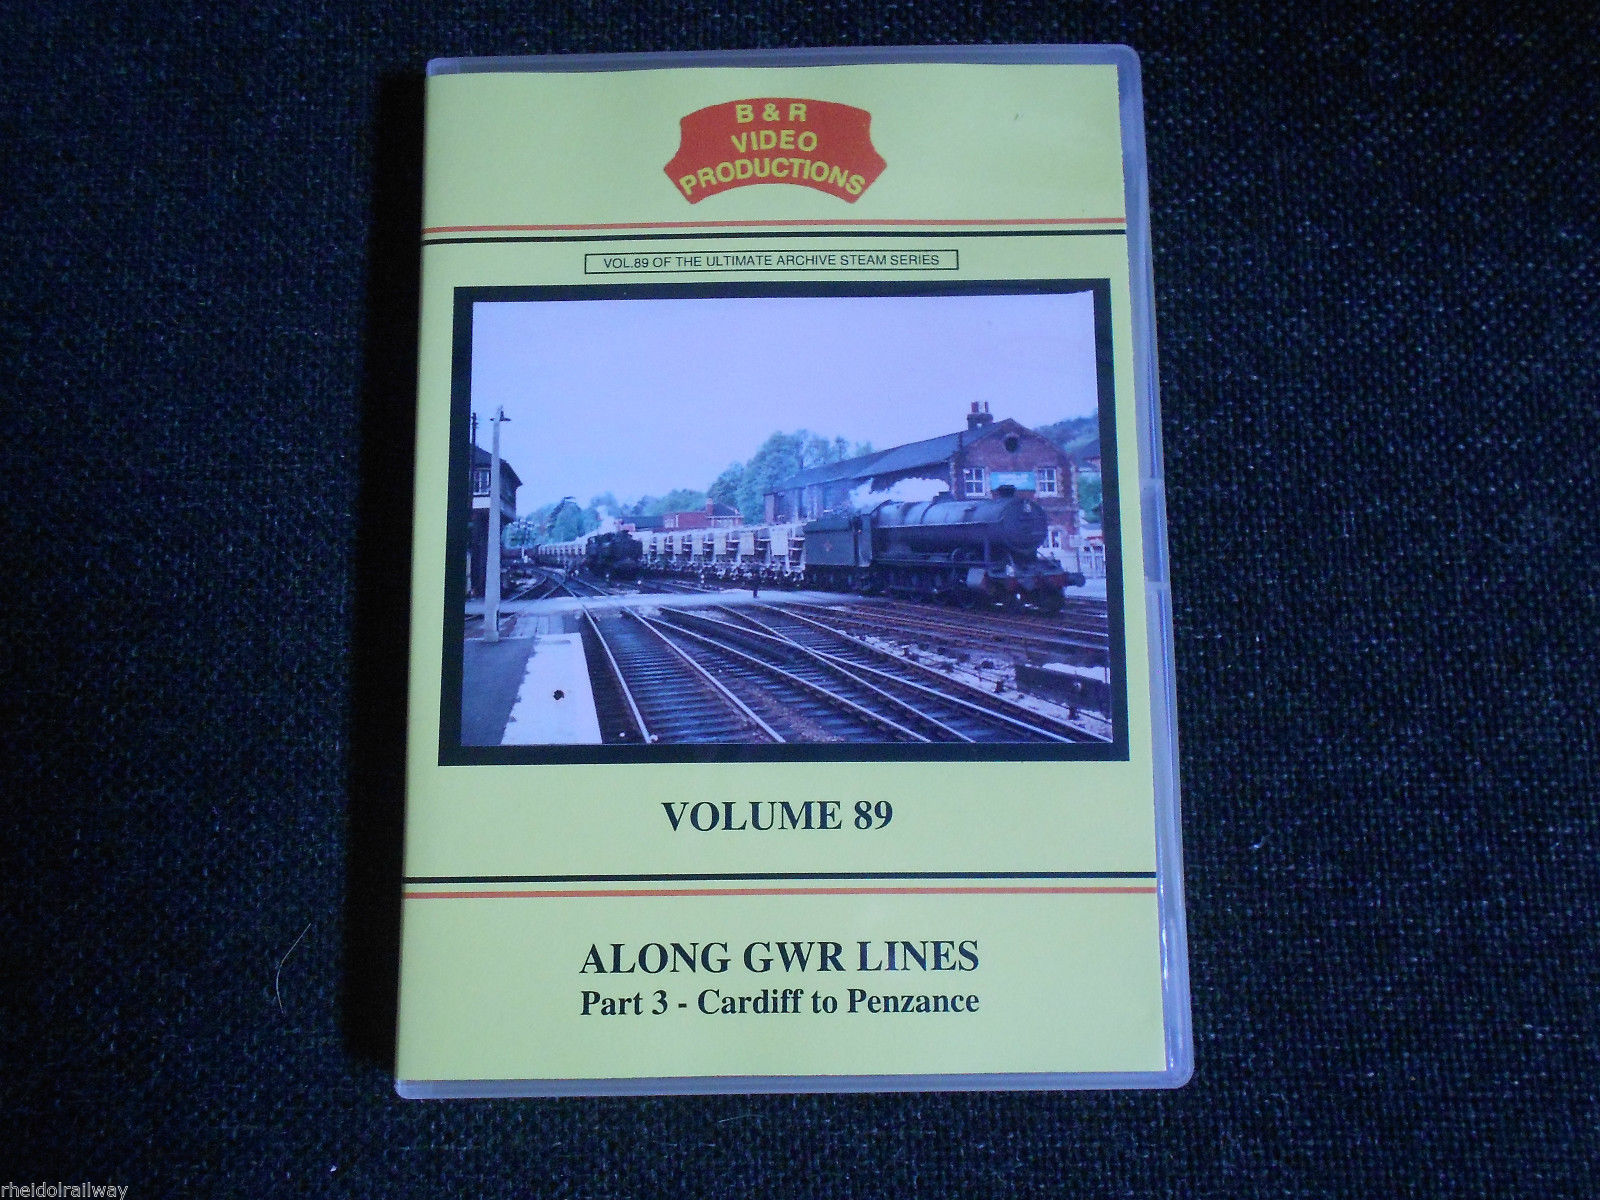 Cardiff,Penzance,Along GWR Lines Part 3 vol 89 DVD B&R Bristol Staple hill - The Vale of Rheidol Railway